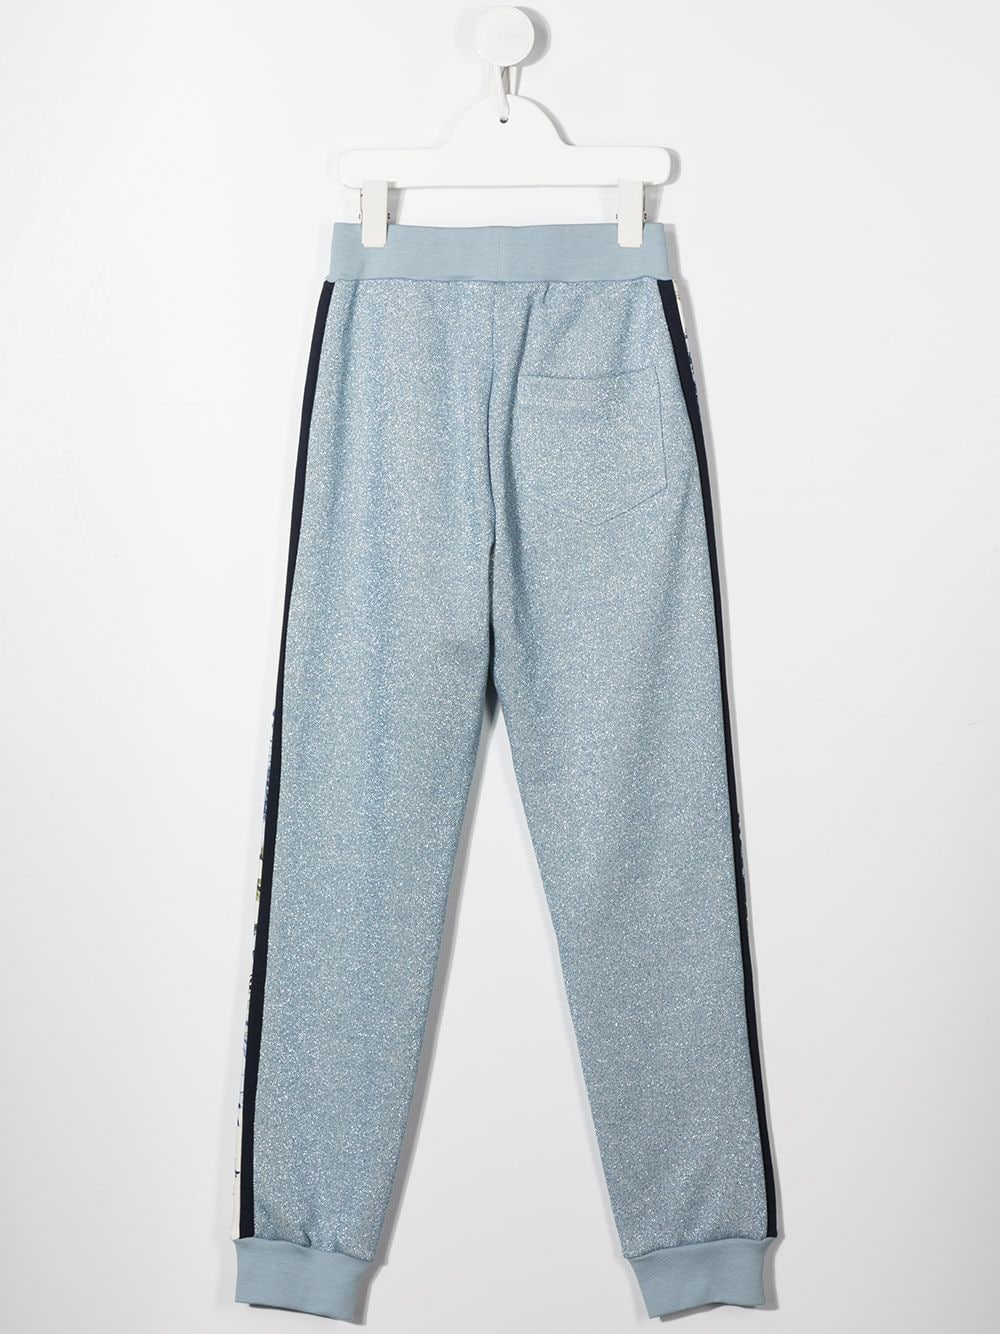 MONNALISA Calzature | Trousers | 196402R560020060